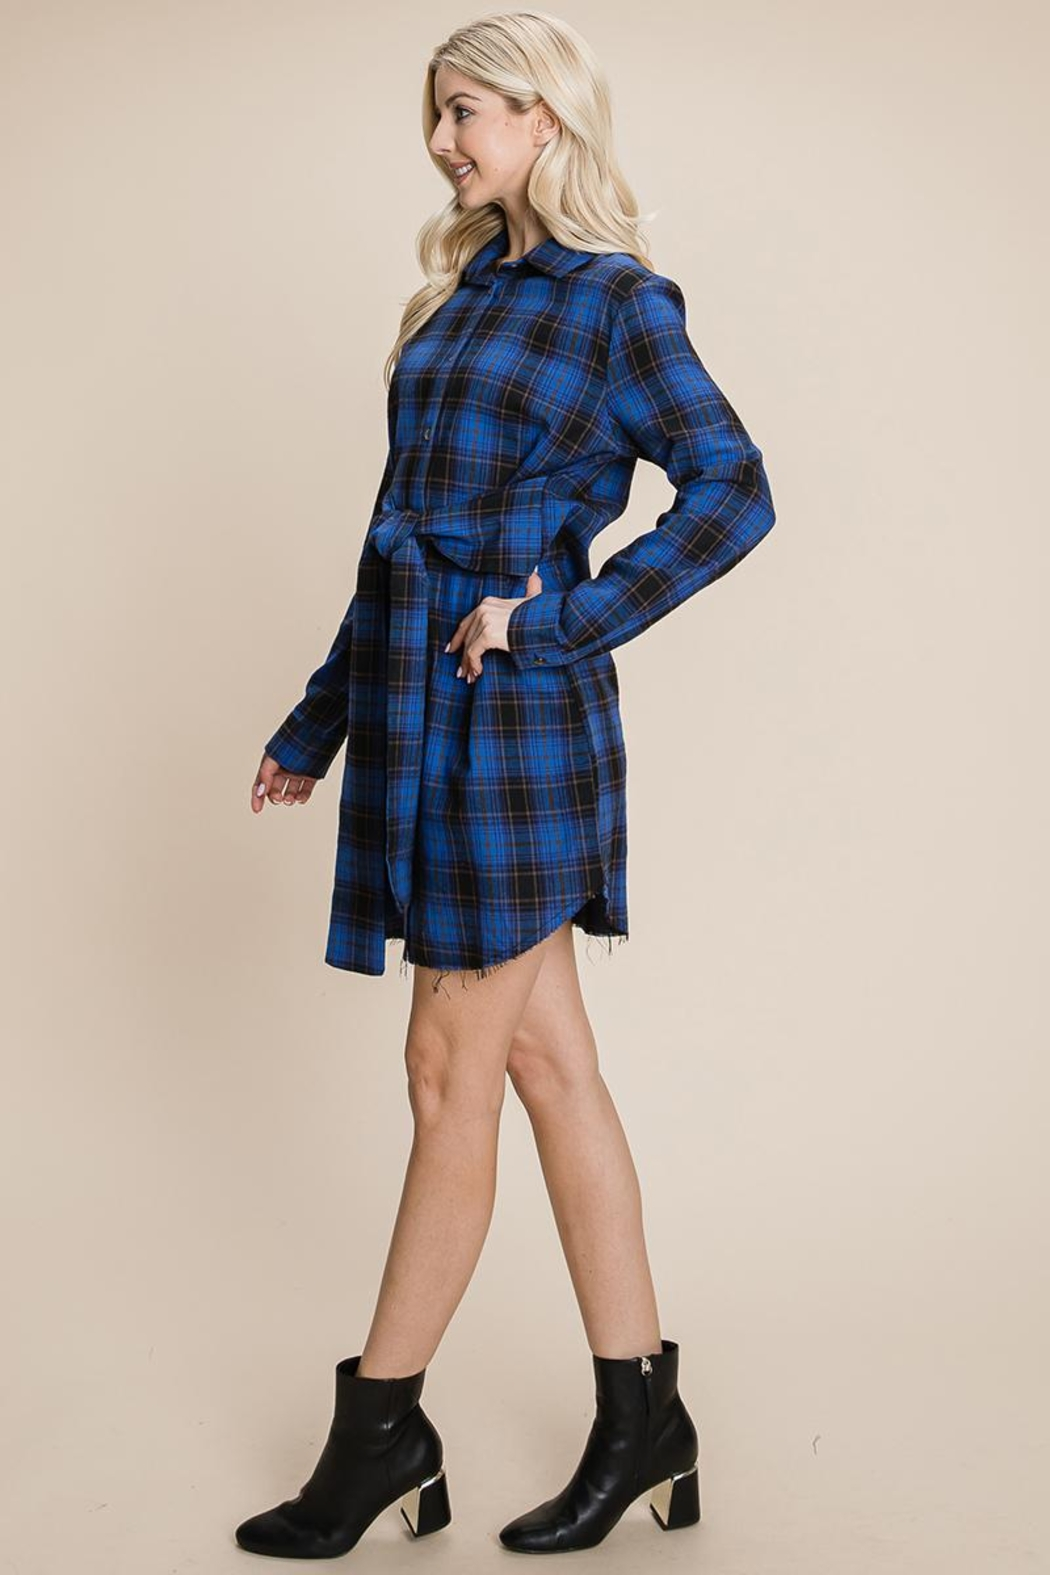 ROLYPOLY Apparel Belted Casual Tunic Cotton Plaid T Shirt Dresses - Front Full Image